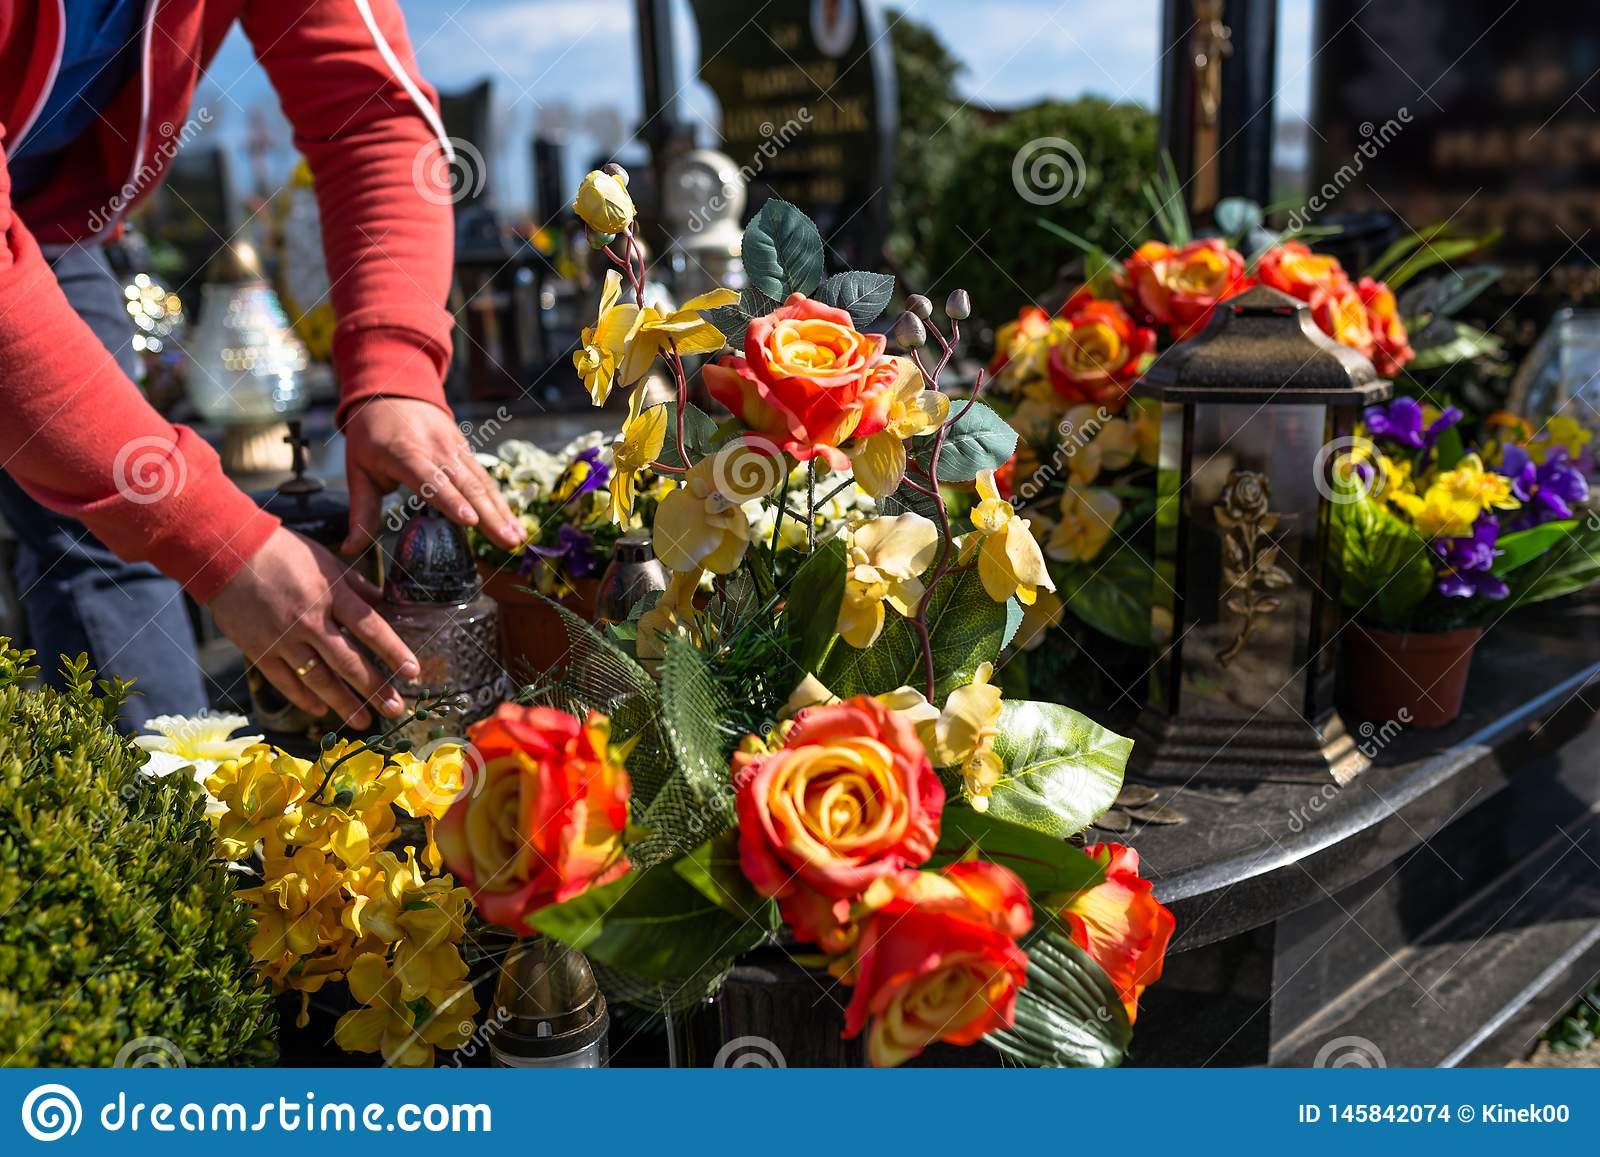 Artificial flowers and candlesticks lie on the tombstone in the cemetery, visible hands of a man.